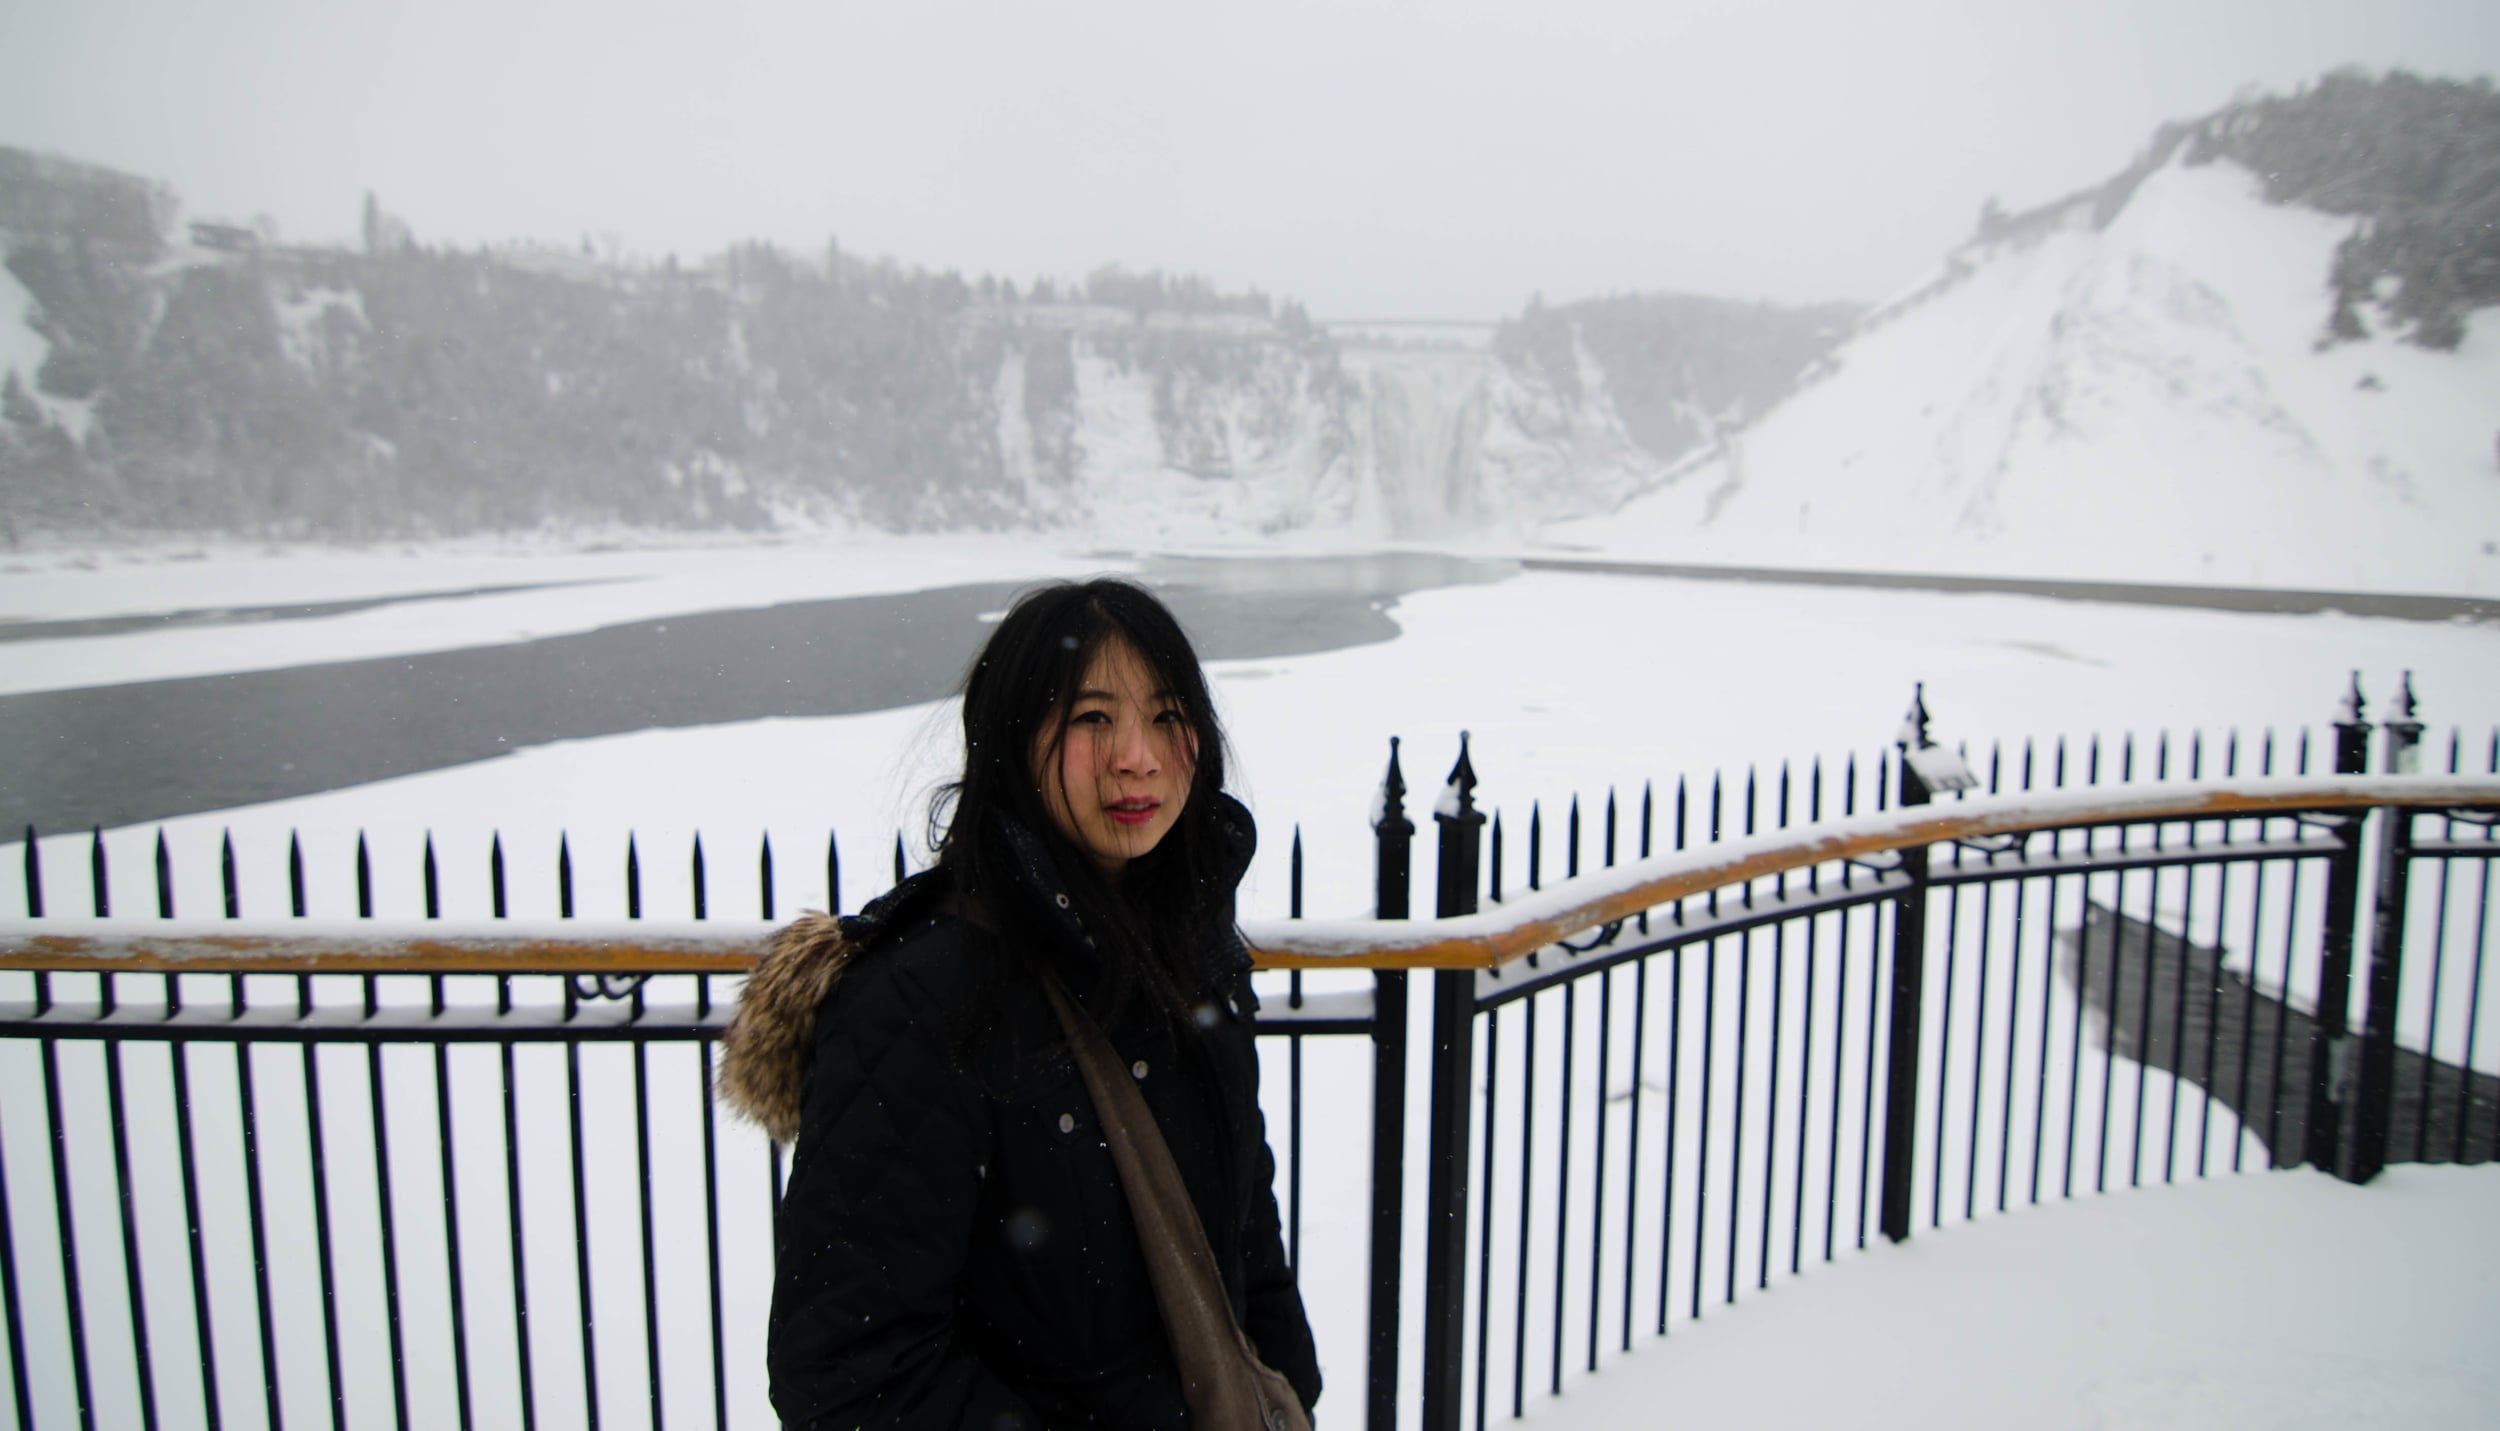 The steps of Montmorency Falls was closed off because of the snow unfortunately.